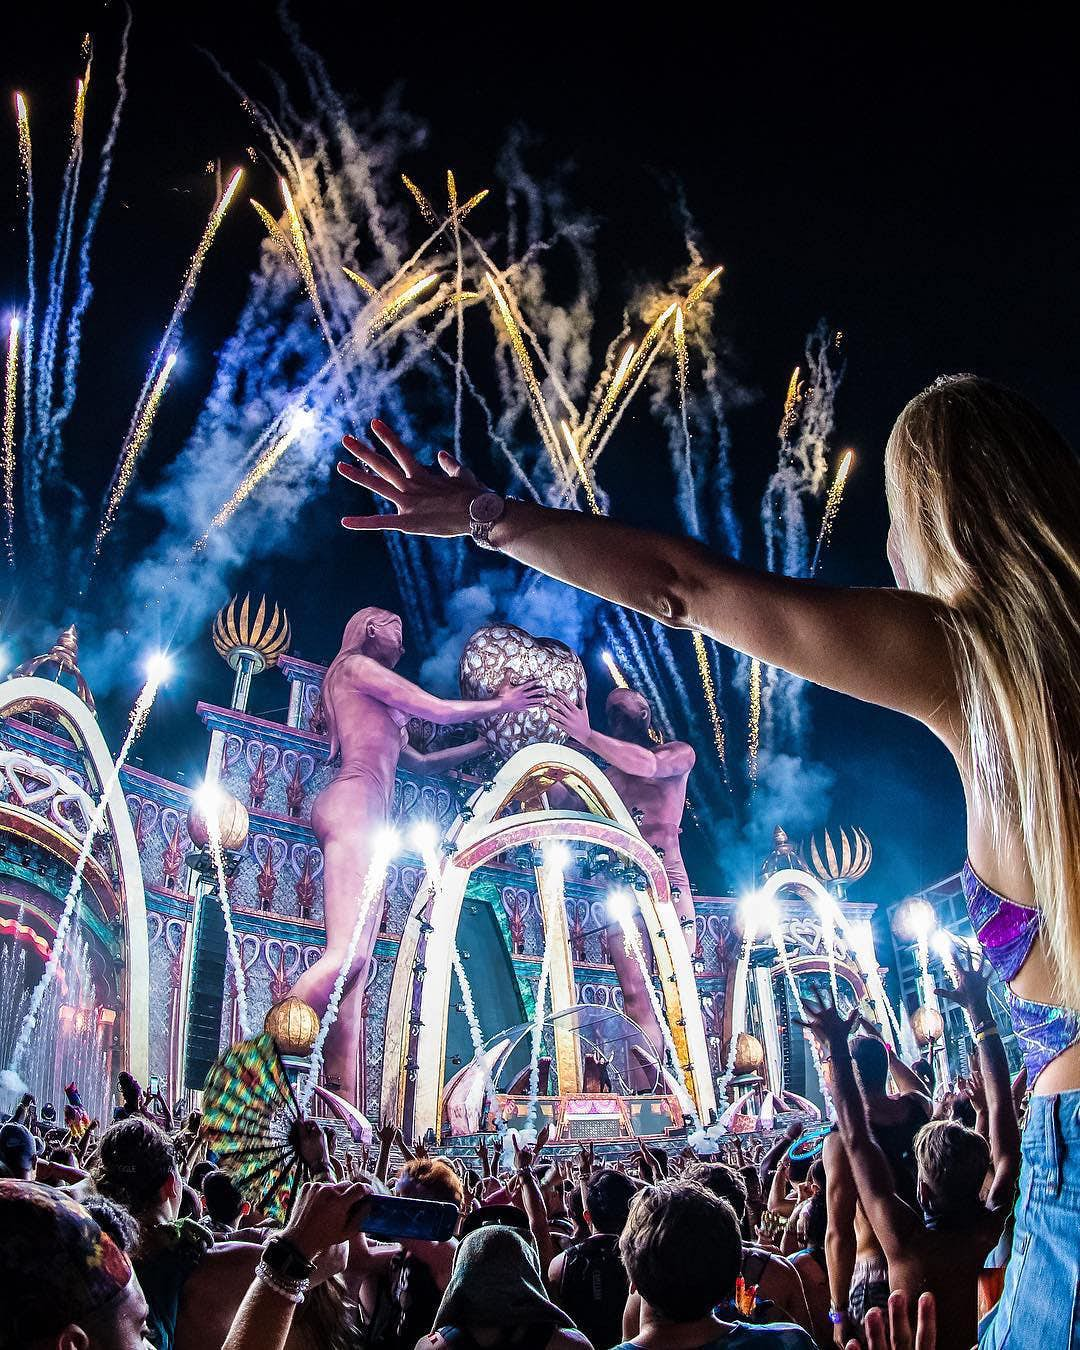 9. EDC: Electric Daisy Carnival, USA – 719,352 hashtags The Las Vegas festival is an annual electronic dance event this year being held on 17-19 May. The festival was first launched in 1991-1993, before picking back up in 1997 and running every year since. What makes this fest extra-special is the 3D superstructures, glow-in-the-dark apparatus, and art installations – plus the selection of funfair rides. This year's acts include 4B, Paul Oakenfold and Paul Van Dyke. credit @edc_lasvegas Instagram